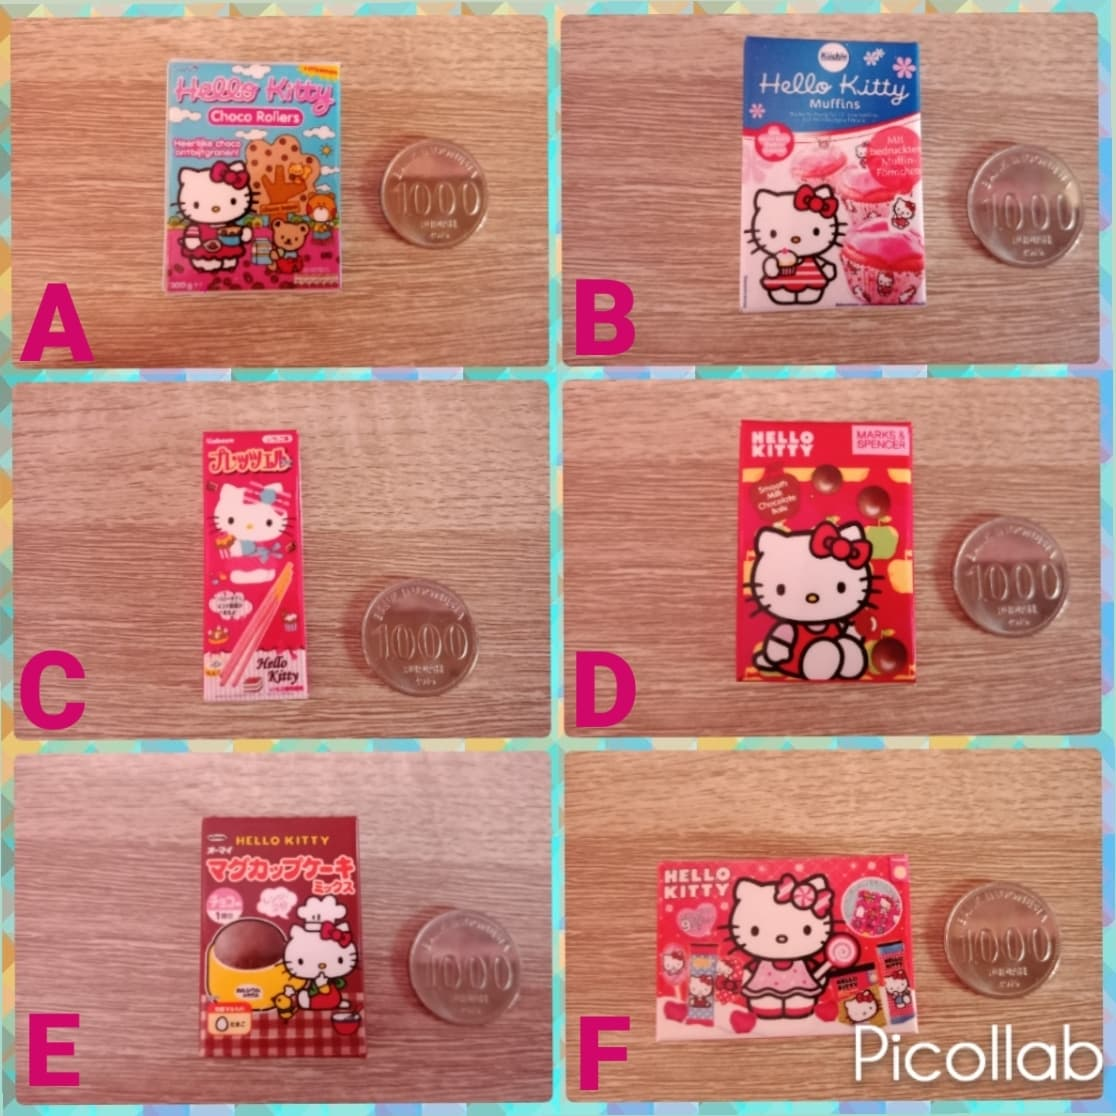 Serba Hello Kitty Jual Magnet Kulkas Hello Kitty Serba Cute Tokopedia